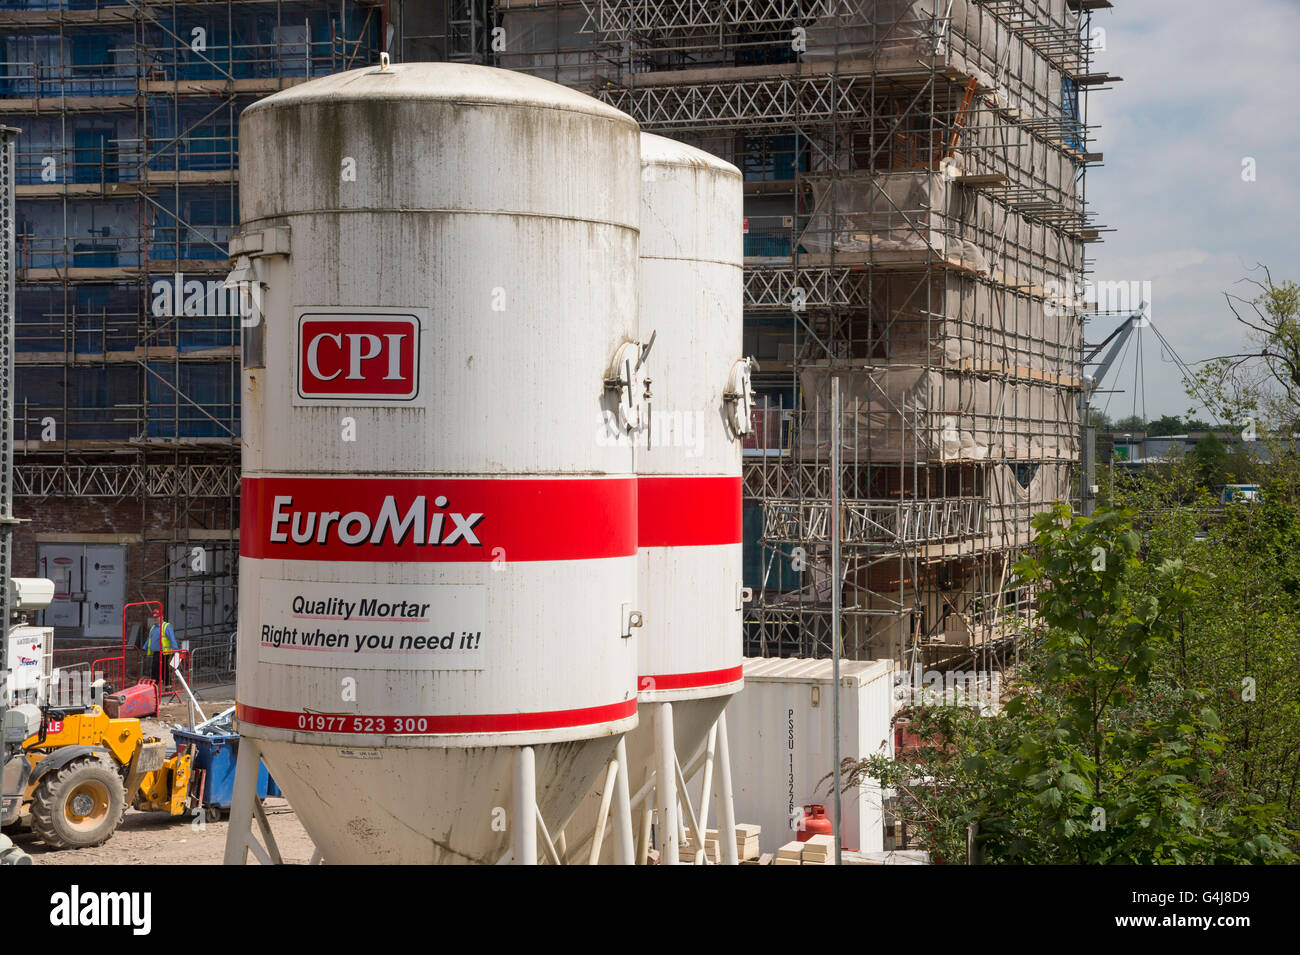 City centre regeneration and view over building site with 2 large dry mortar silos - Hungate, York, North Yorkshire, Stock Photo